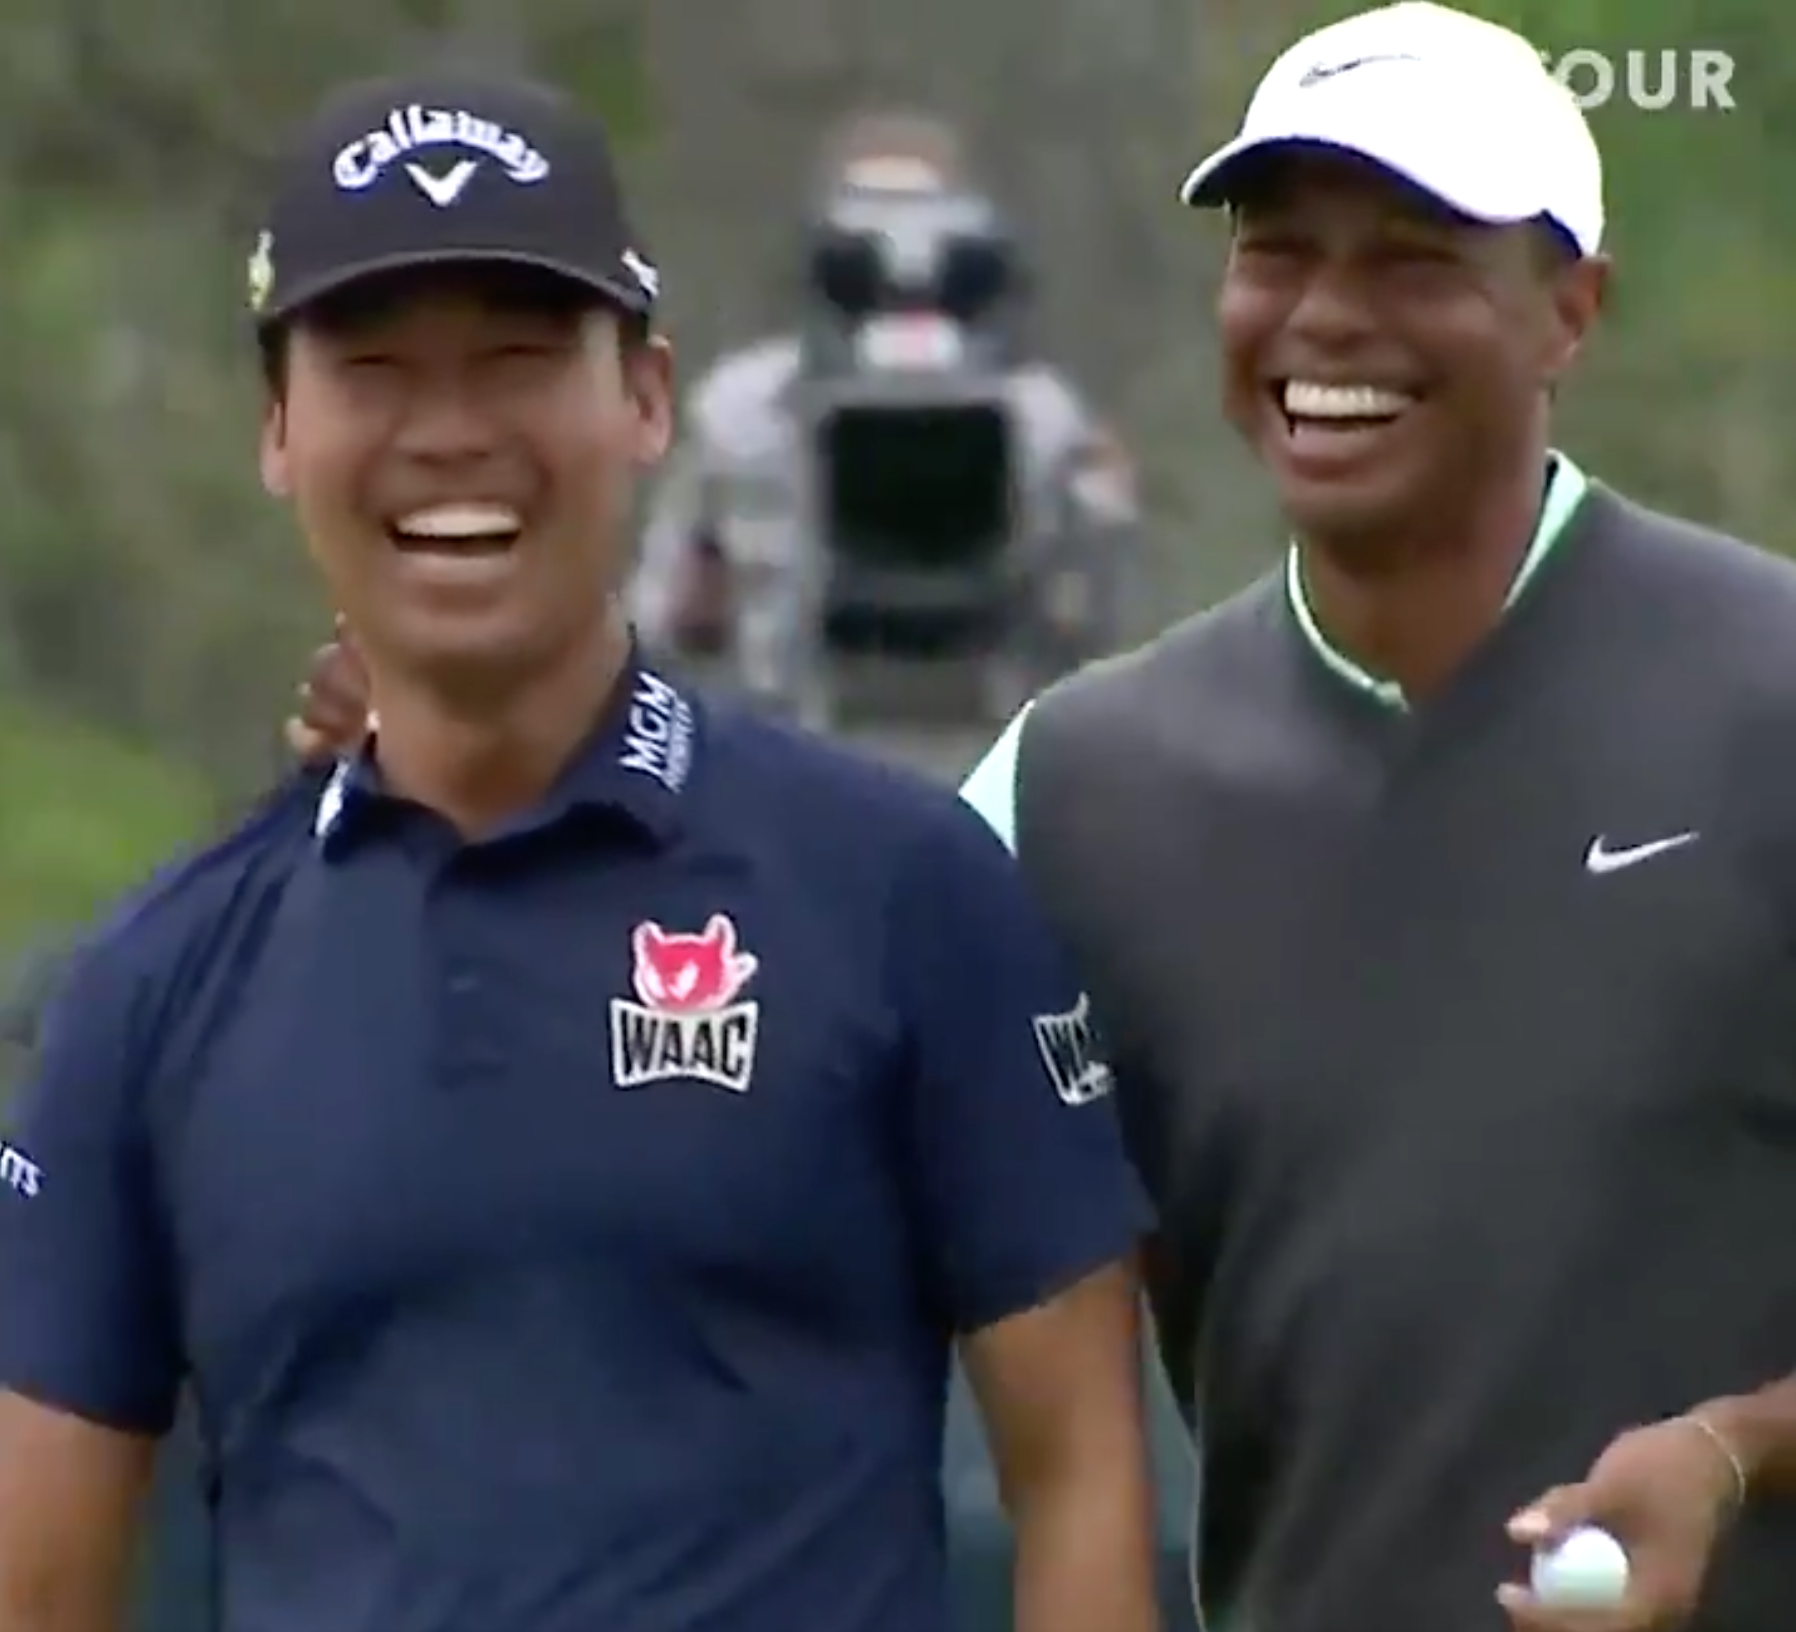 Players Championship 2019: Tiger Woods playfully mocks Kevin Na on 17, both get a huge kick out of it ...